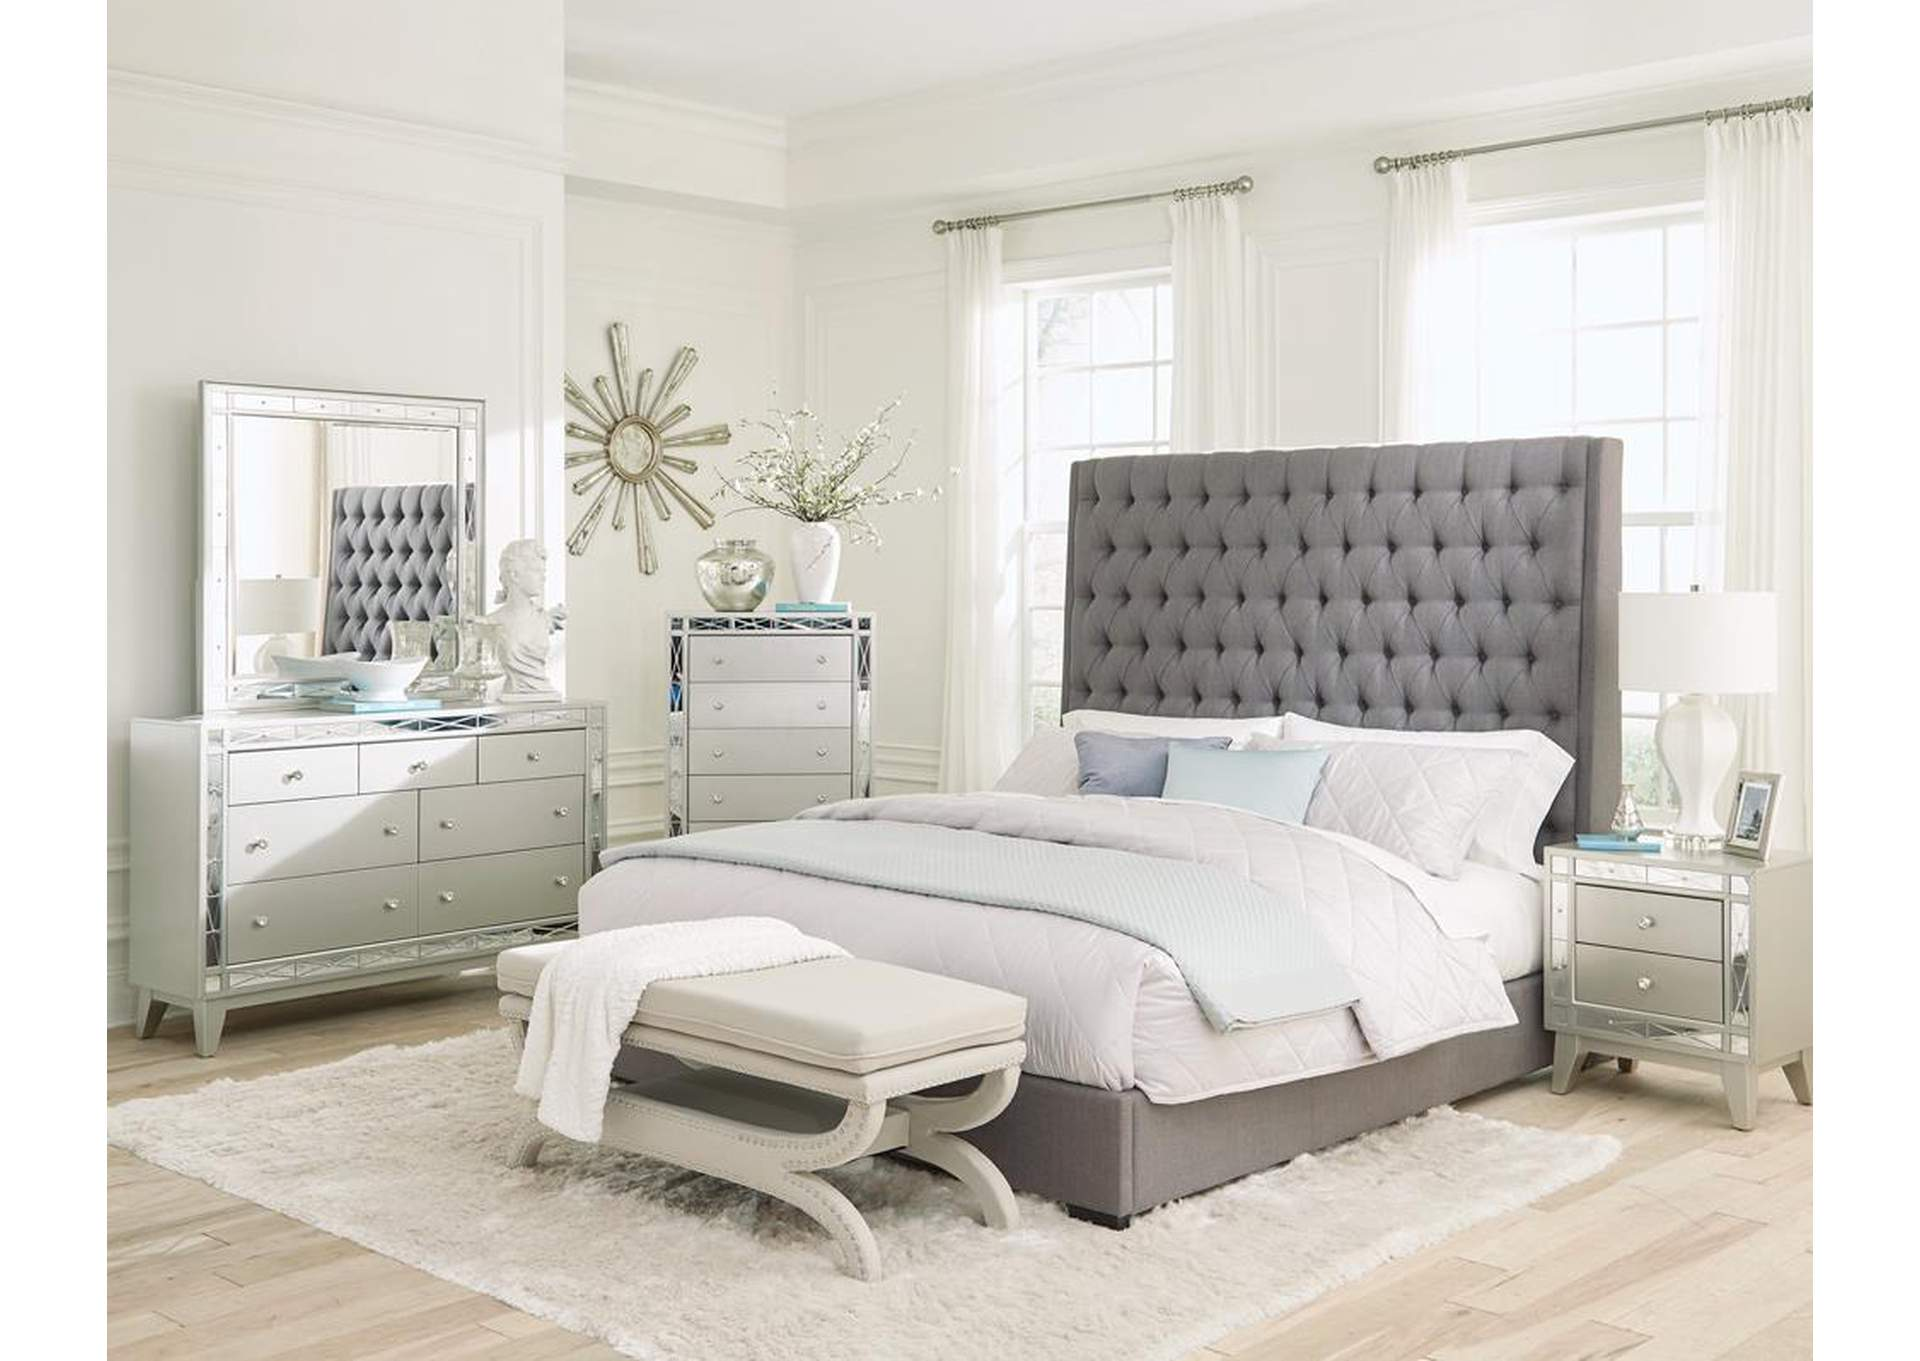 Napa Camille Grey Upholstered Queen Bed,Coaster Furniture